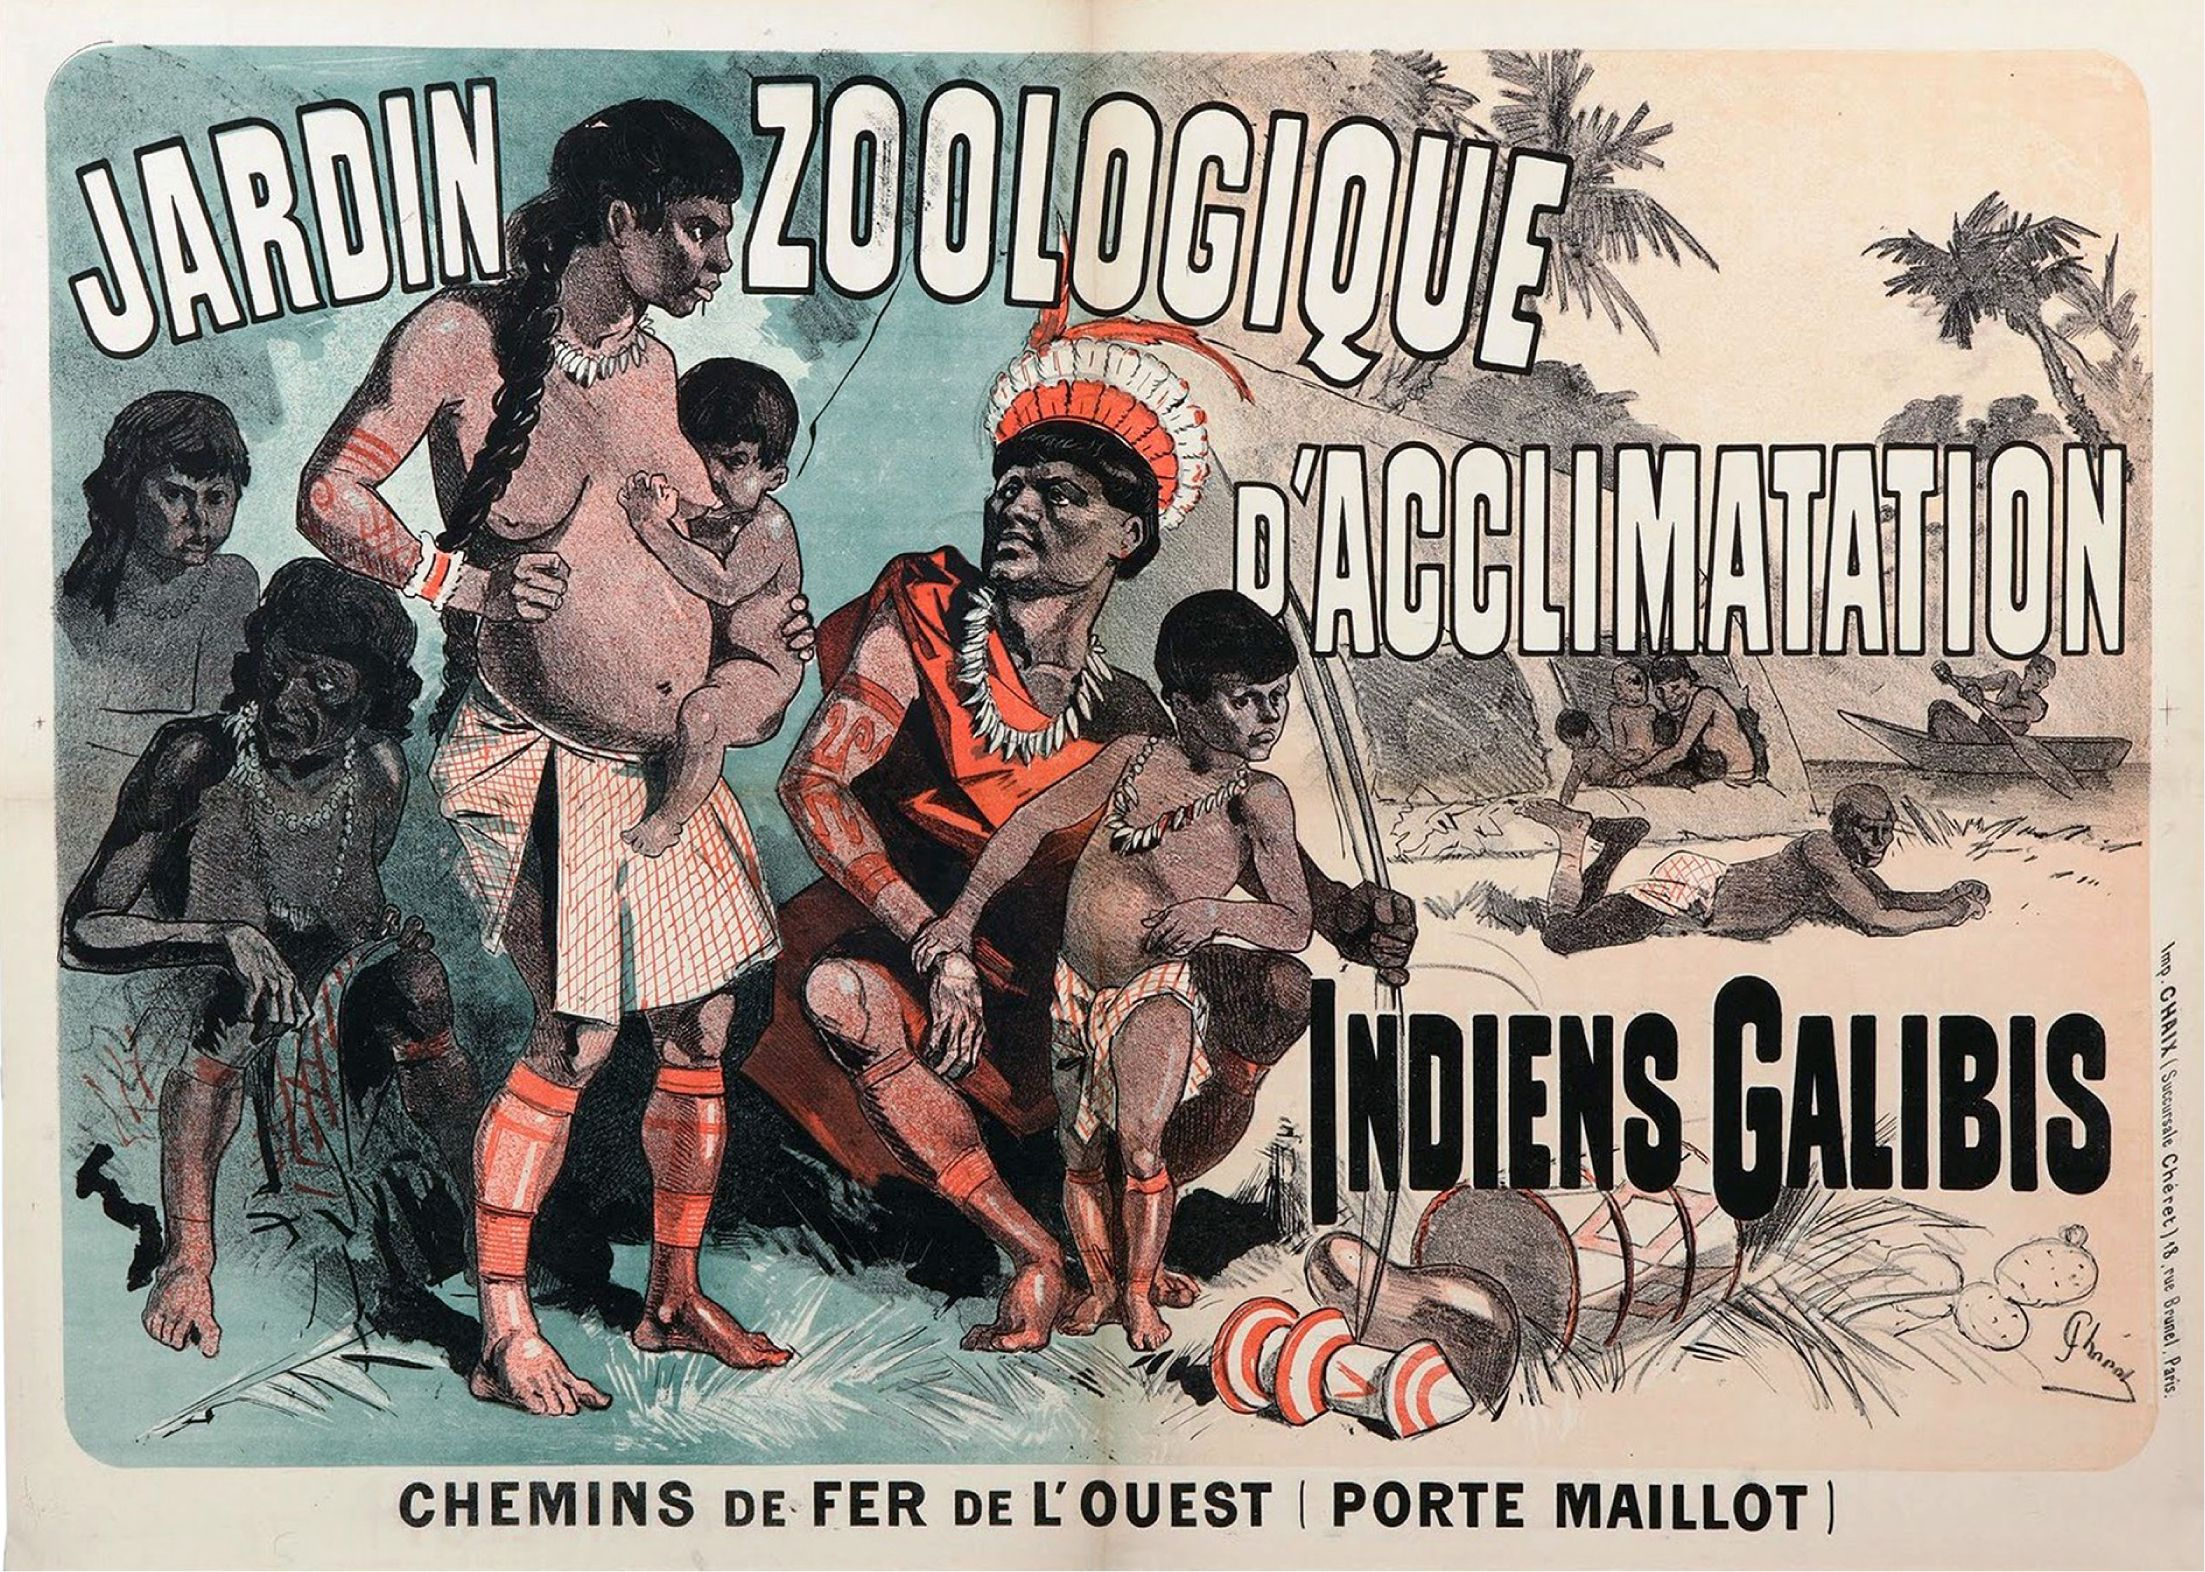 Stereotypical propaganda ad for racist colonial exhibition